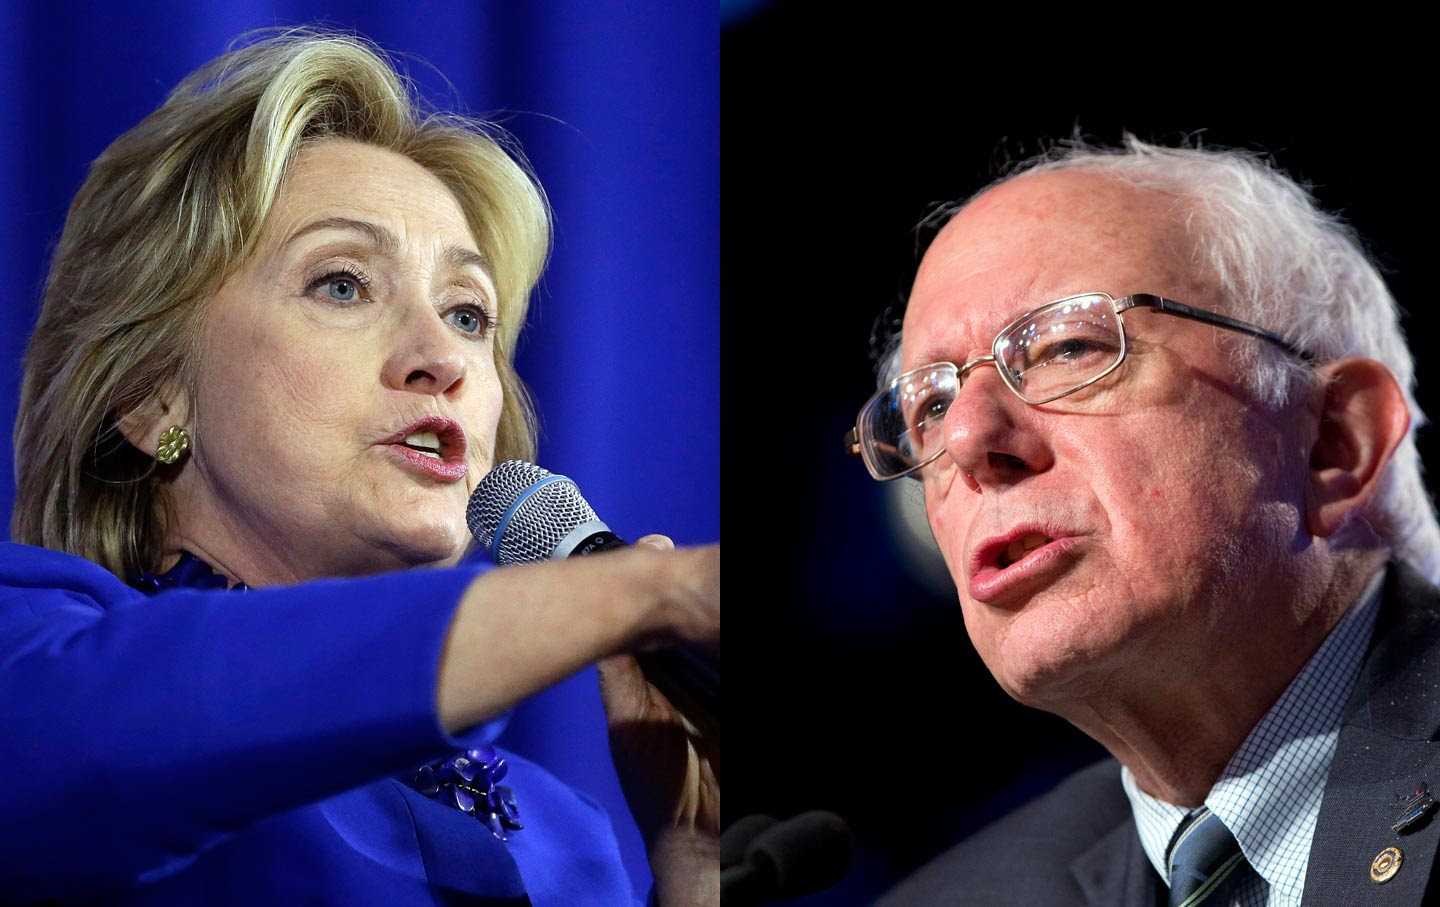 Hillary Clinton and Bernie Sanders